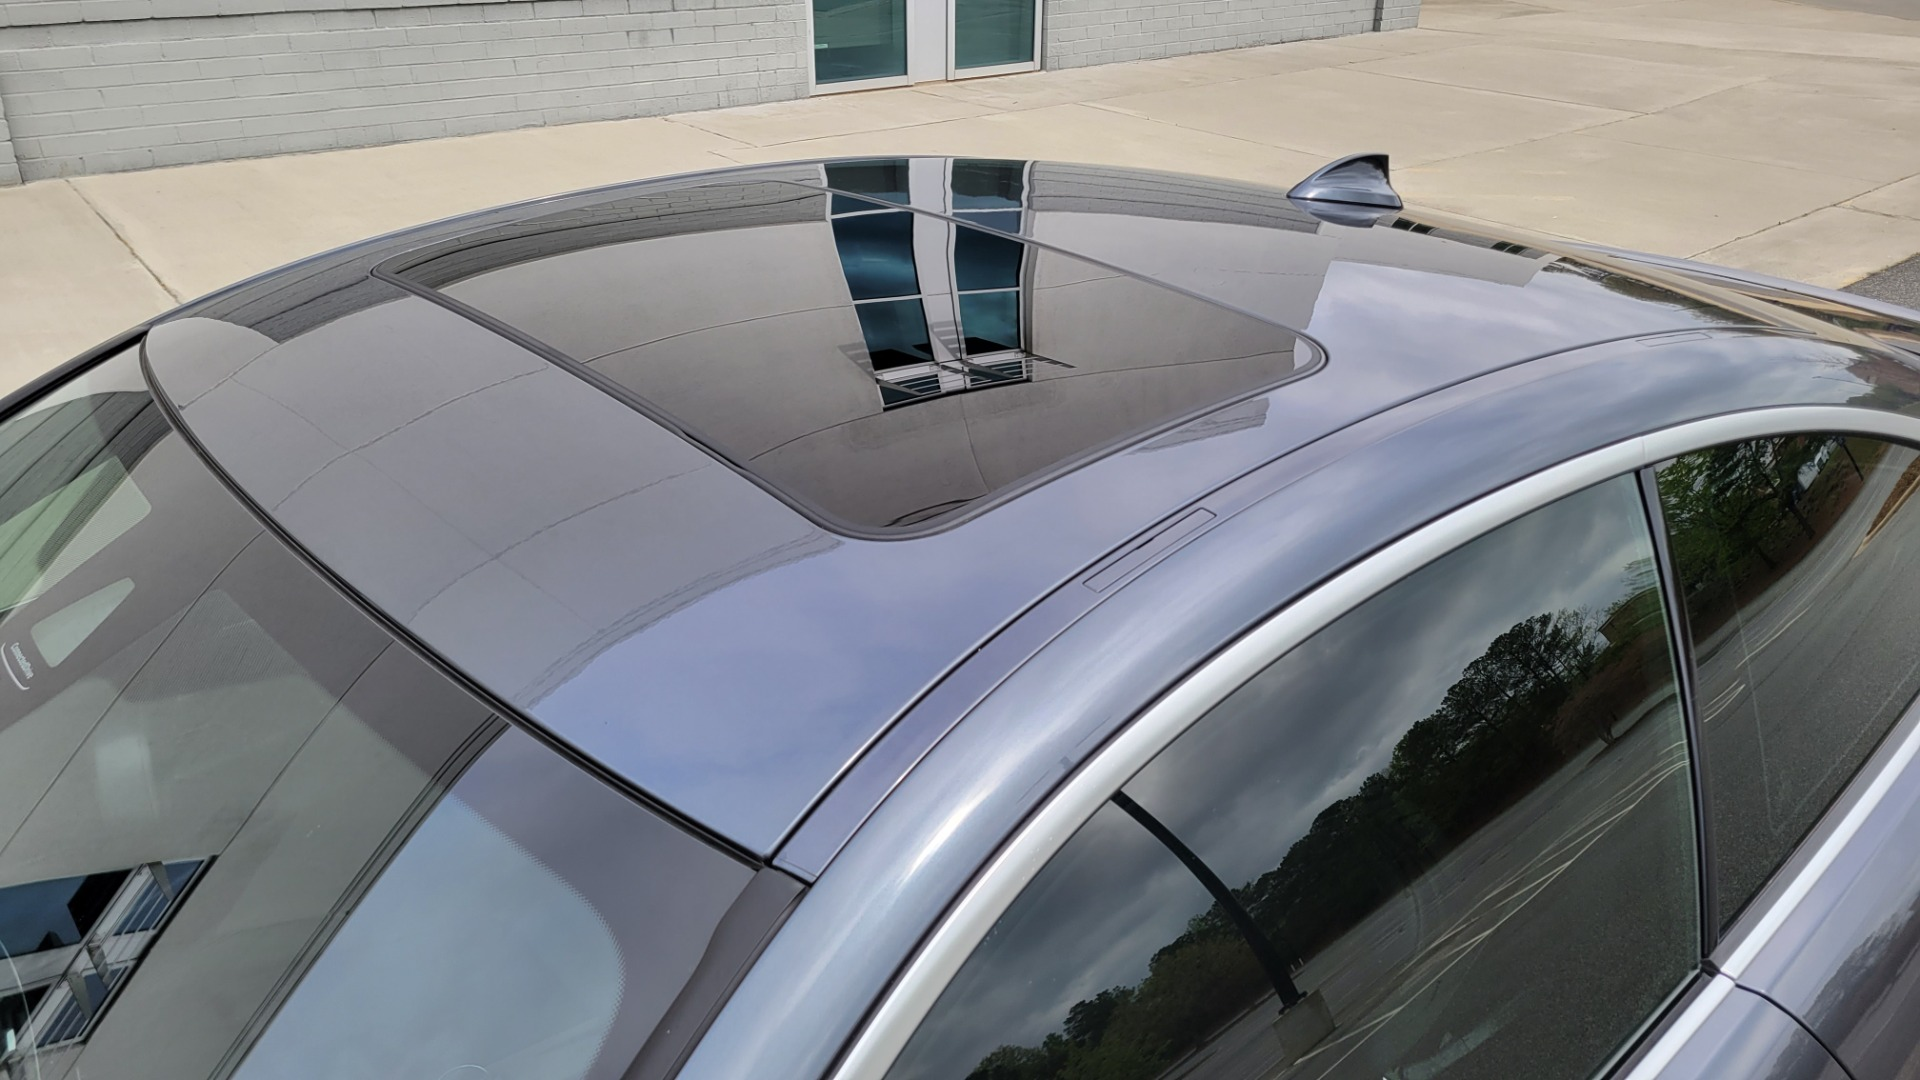 Used 2019 BMW 4 SERIES 430I COUPE 2.0L / RWD / DRVR ASST / CONV PKG / SUNROOF / REARVIEW for sale $32,295 at Formula Imports in Charlotte NC 28227 7